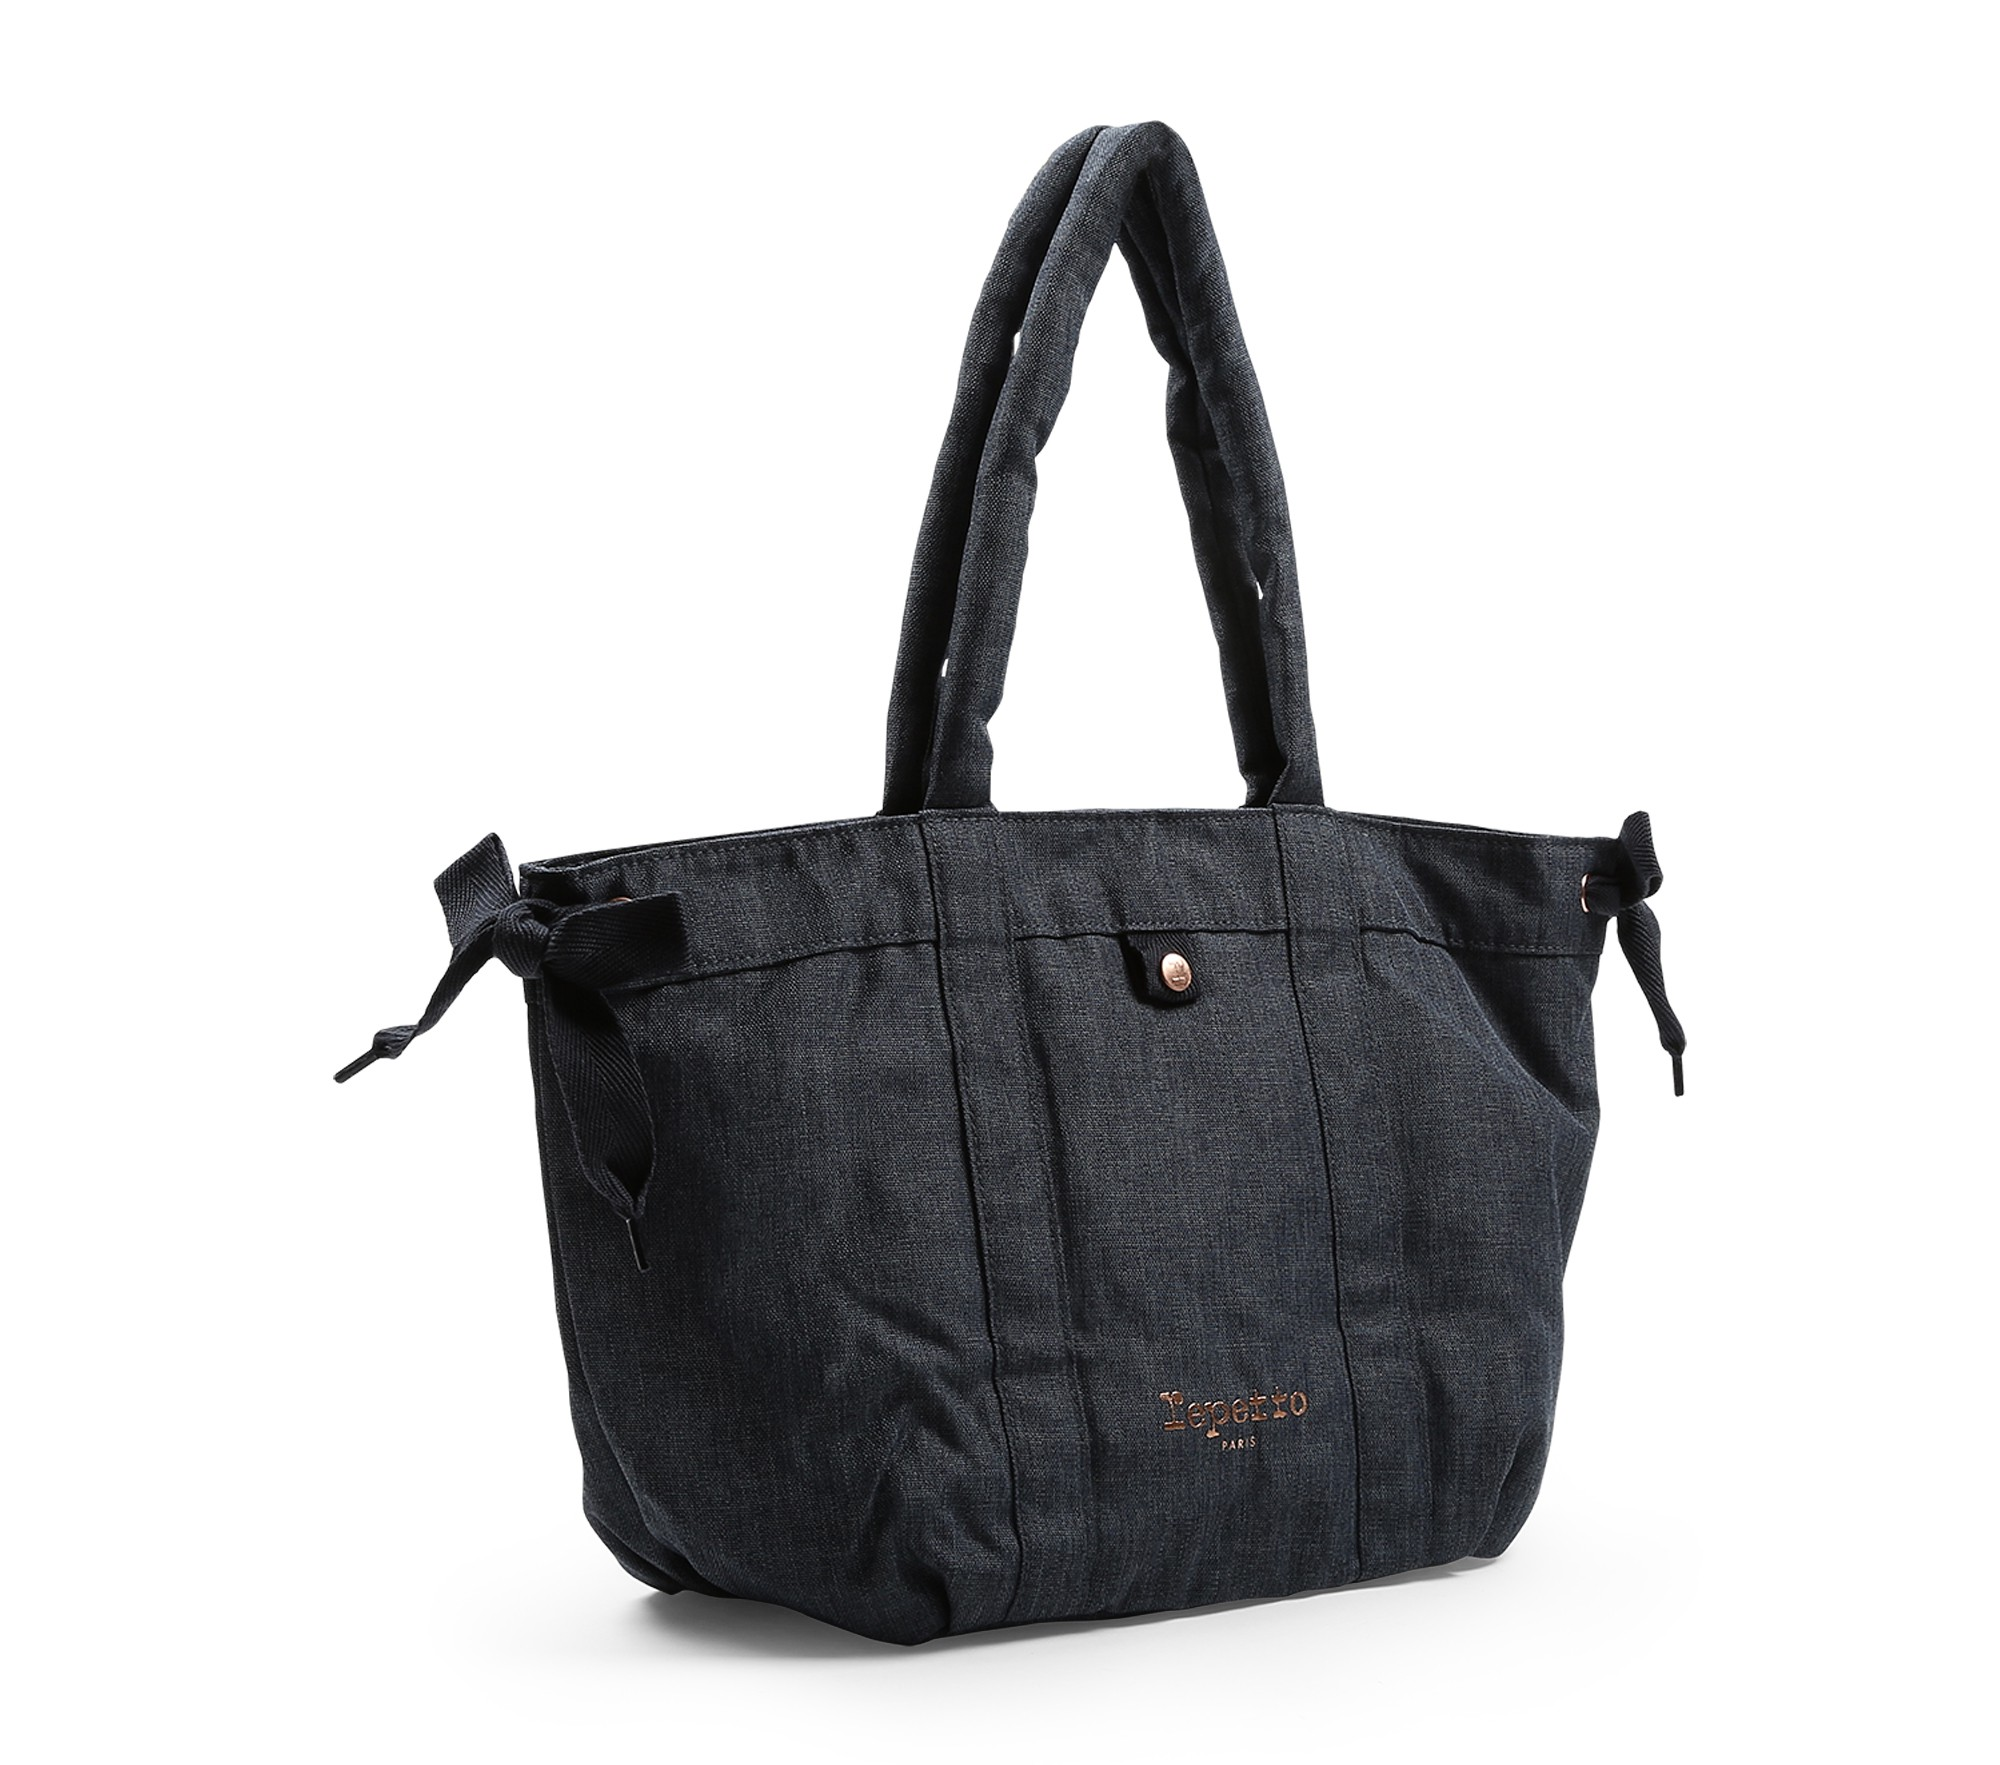 Coppélia girl handbag